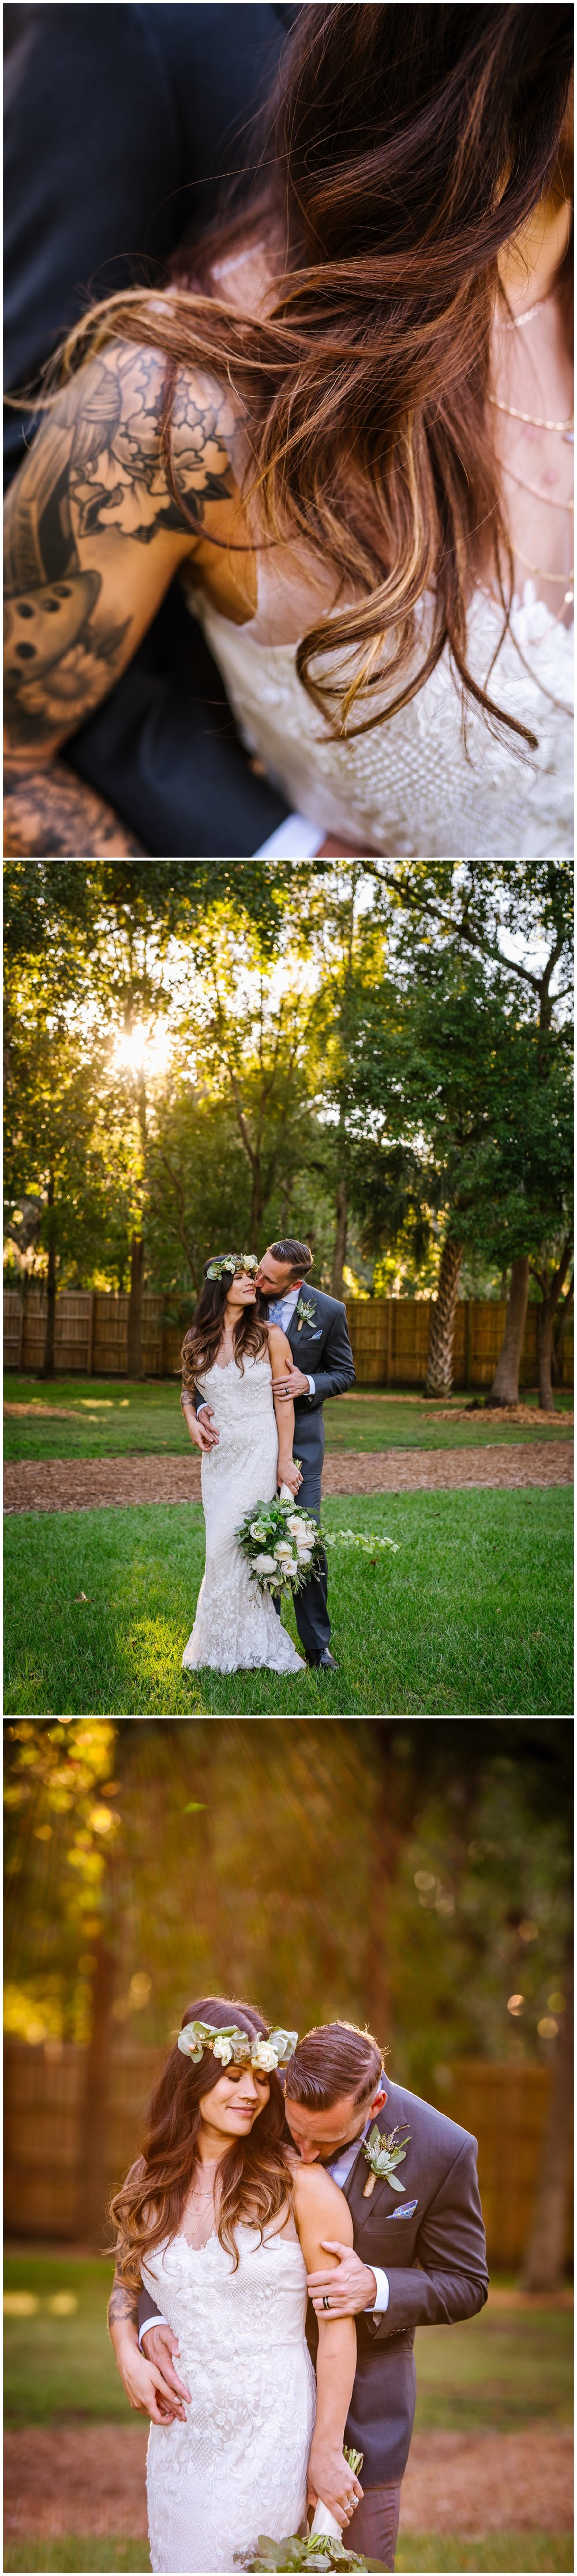 Tampa-wedding-photographer-cross-creek-ranch-bhldn-anthrolpologie-bohemian-tattoos_0120.jpg